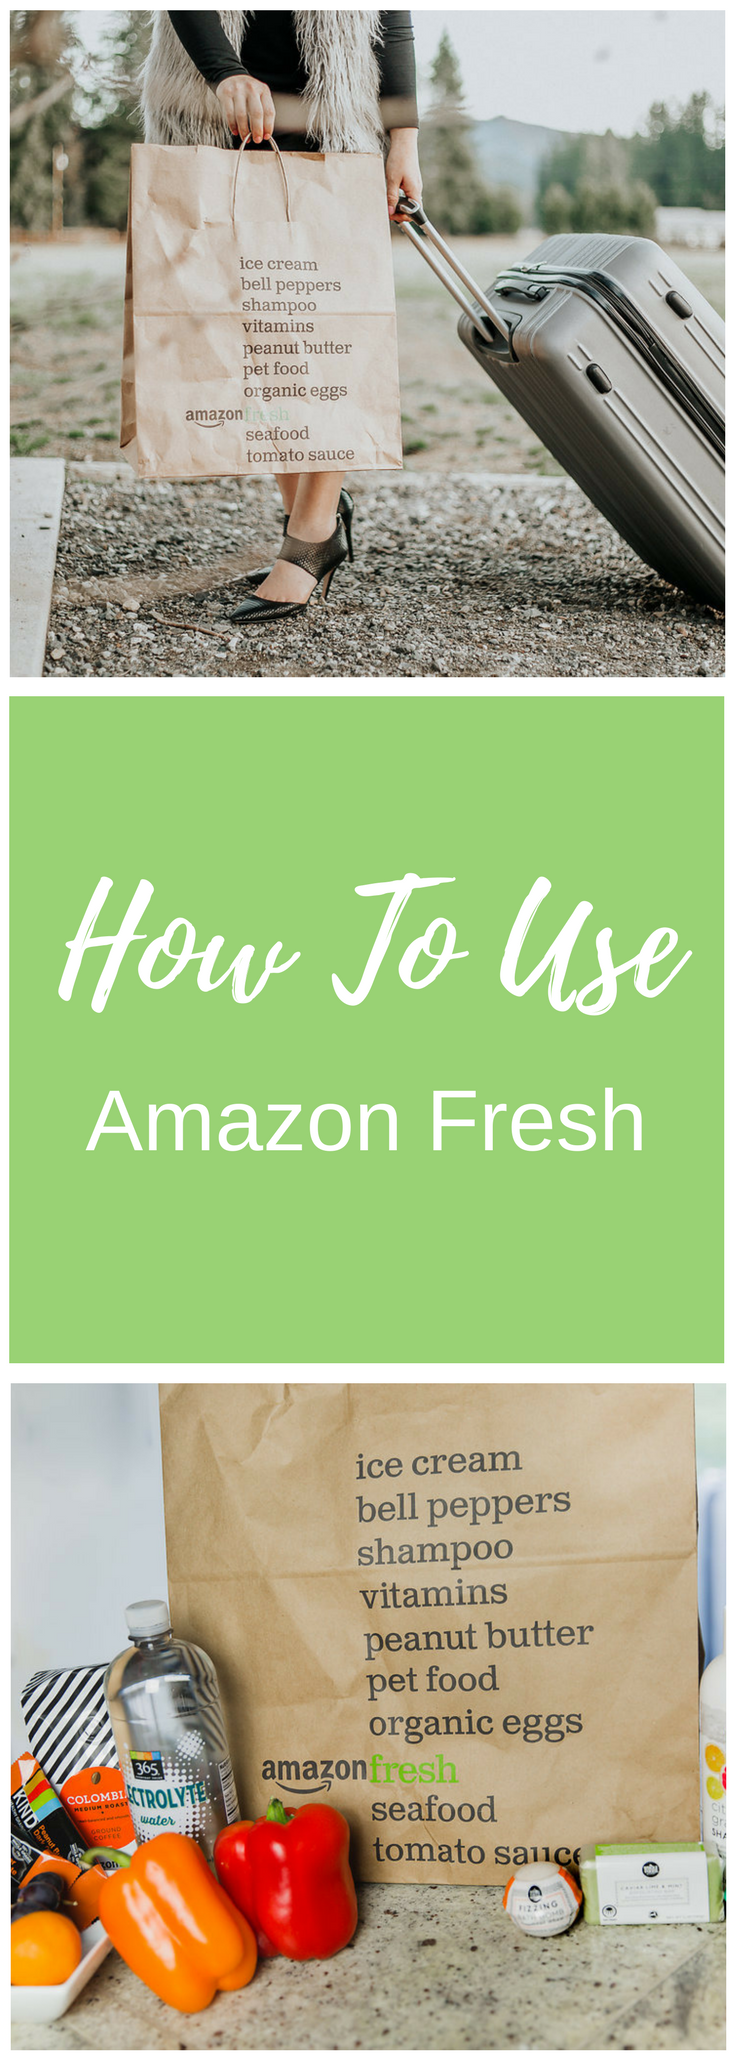 How To Use AmazonFresh For a Girls' Weekend in Seattle